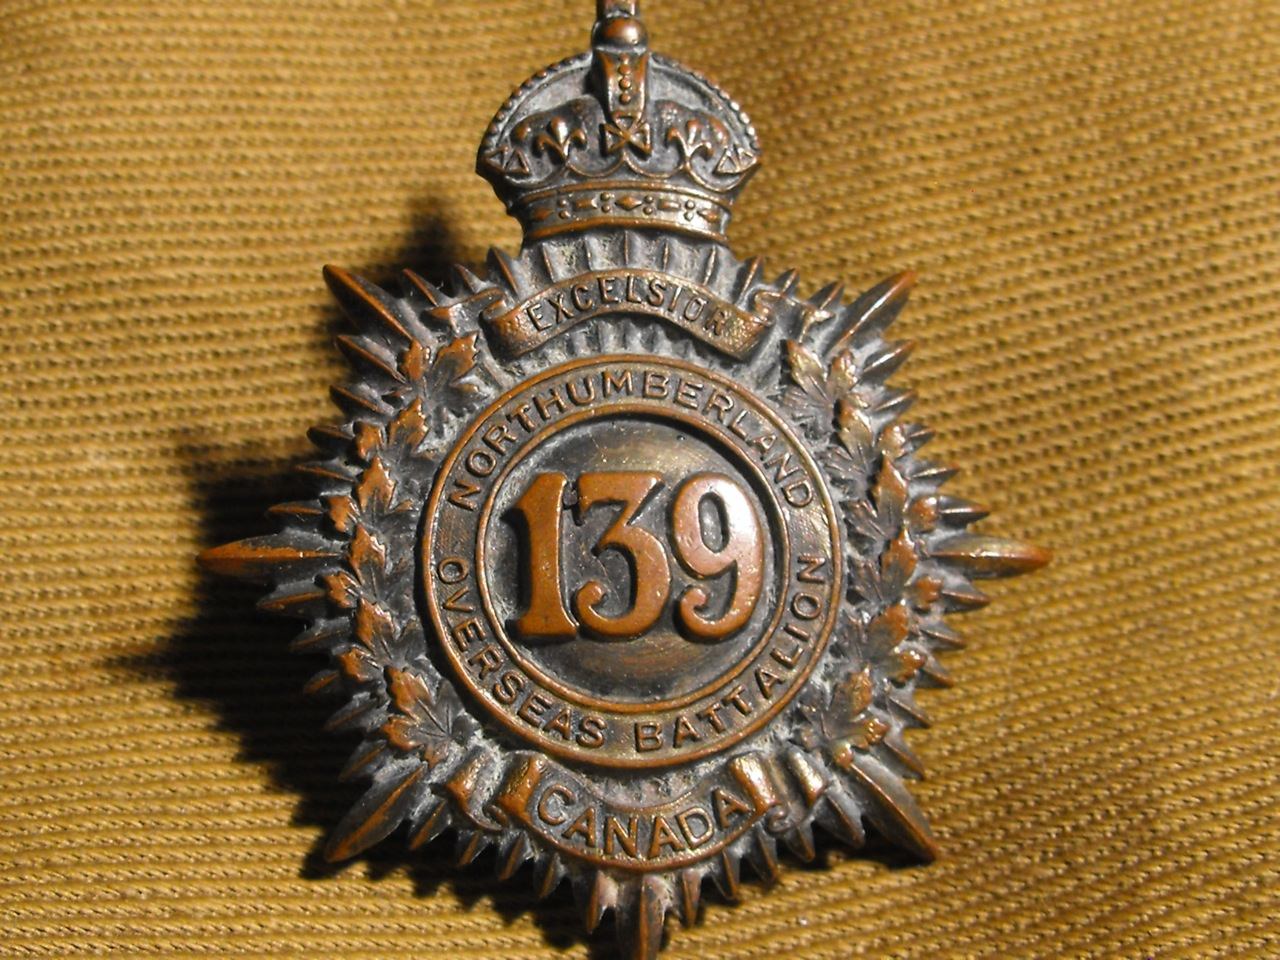 139th Bn. Northumberland Cap Badge